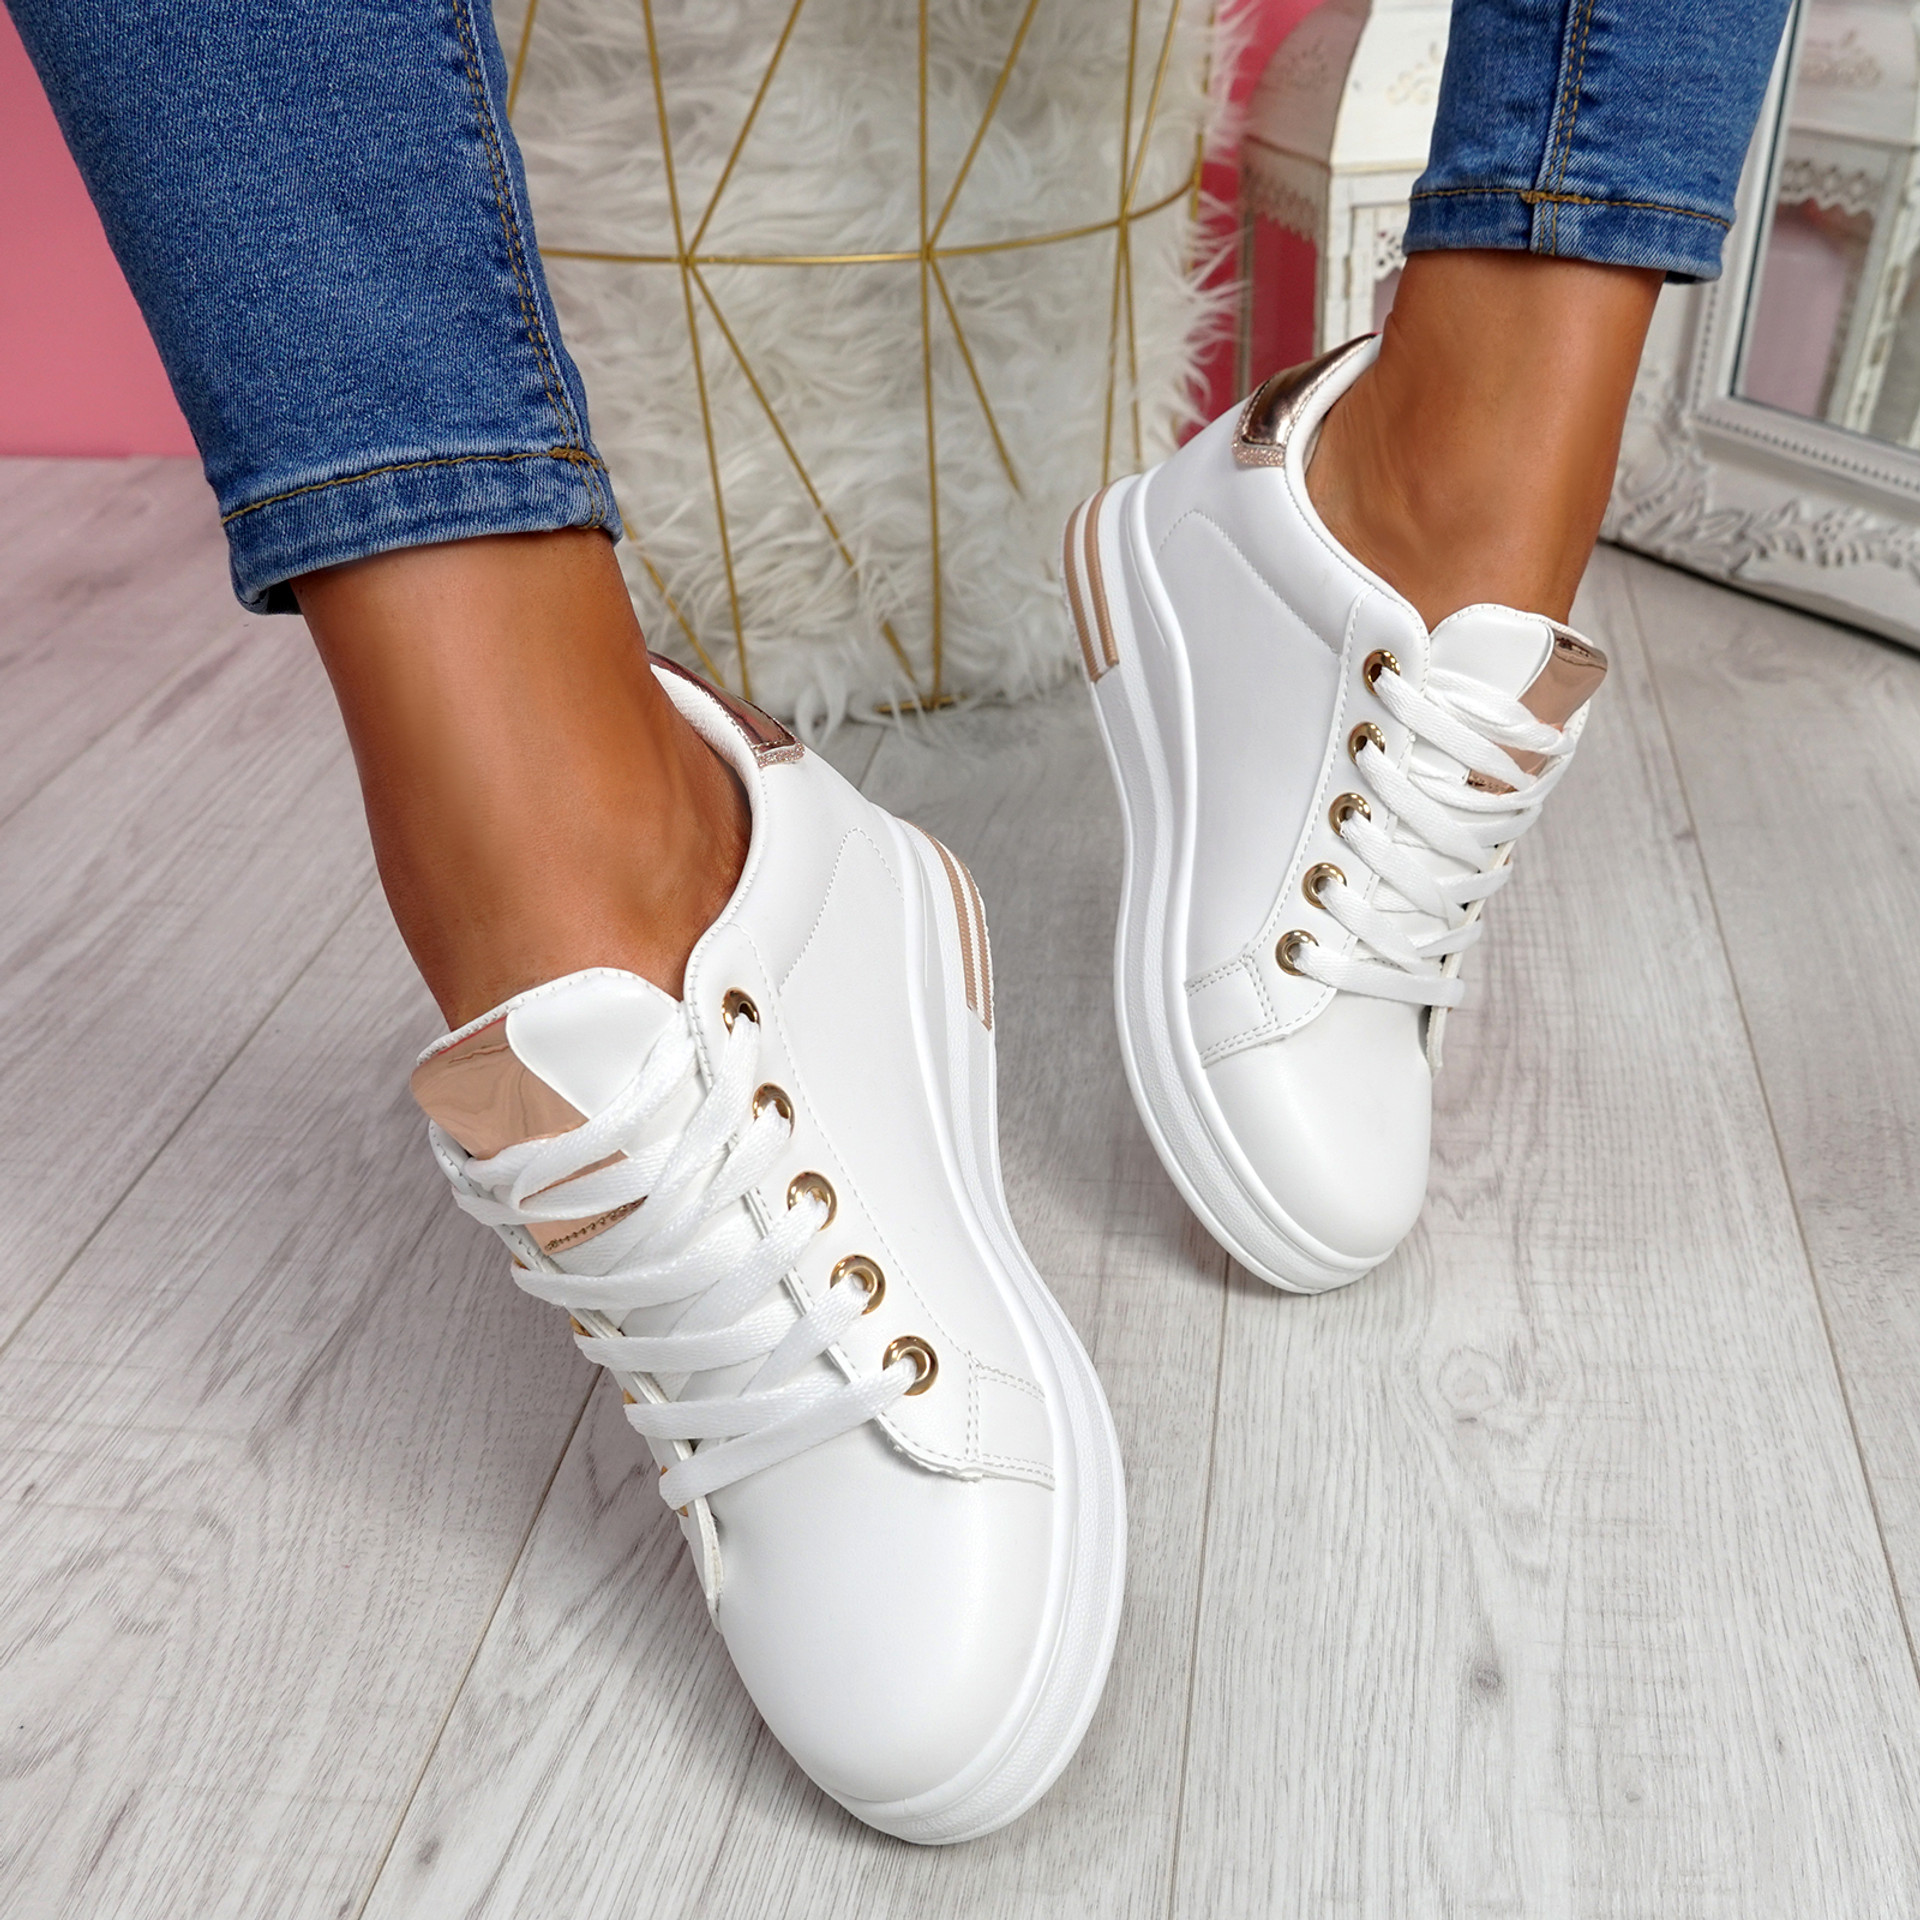 Liva White Champagne Wedge Trainers